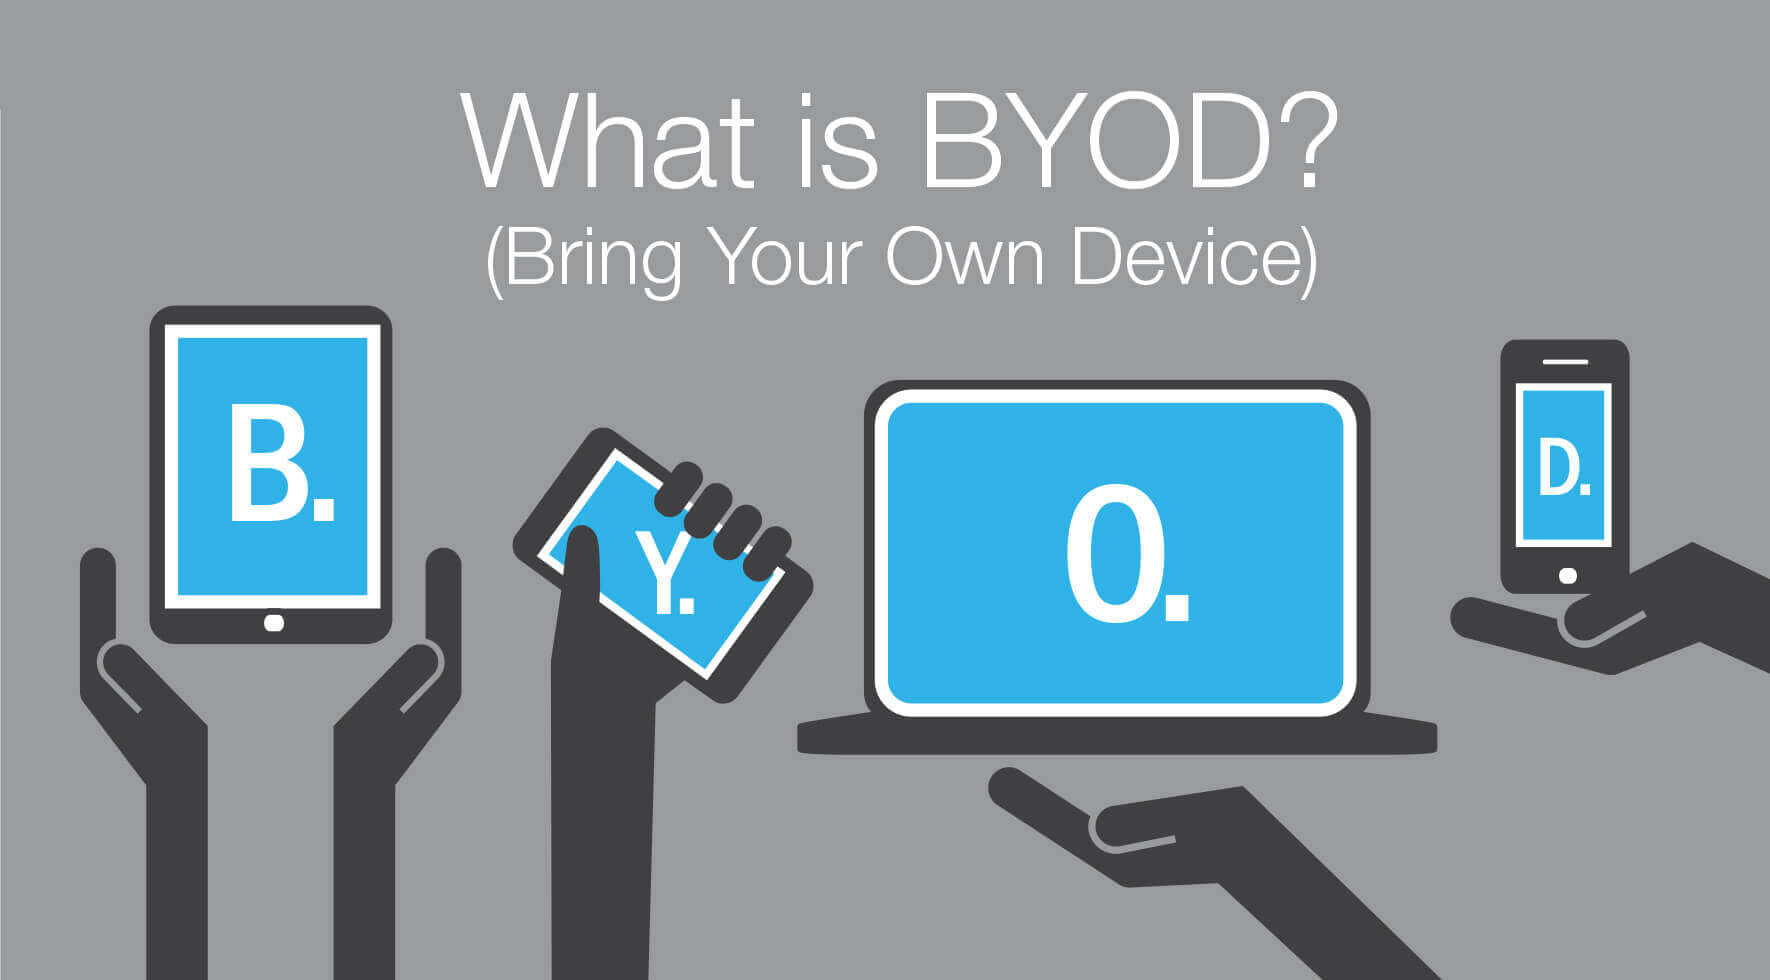 What about BYOD?